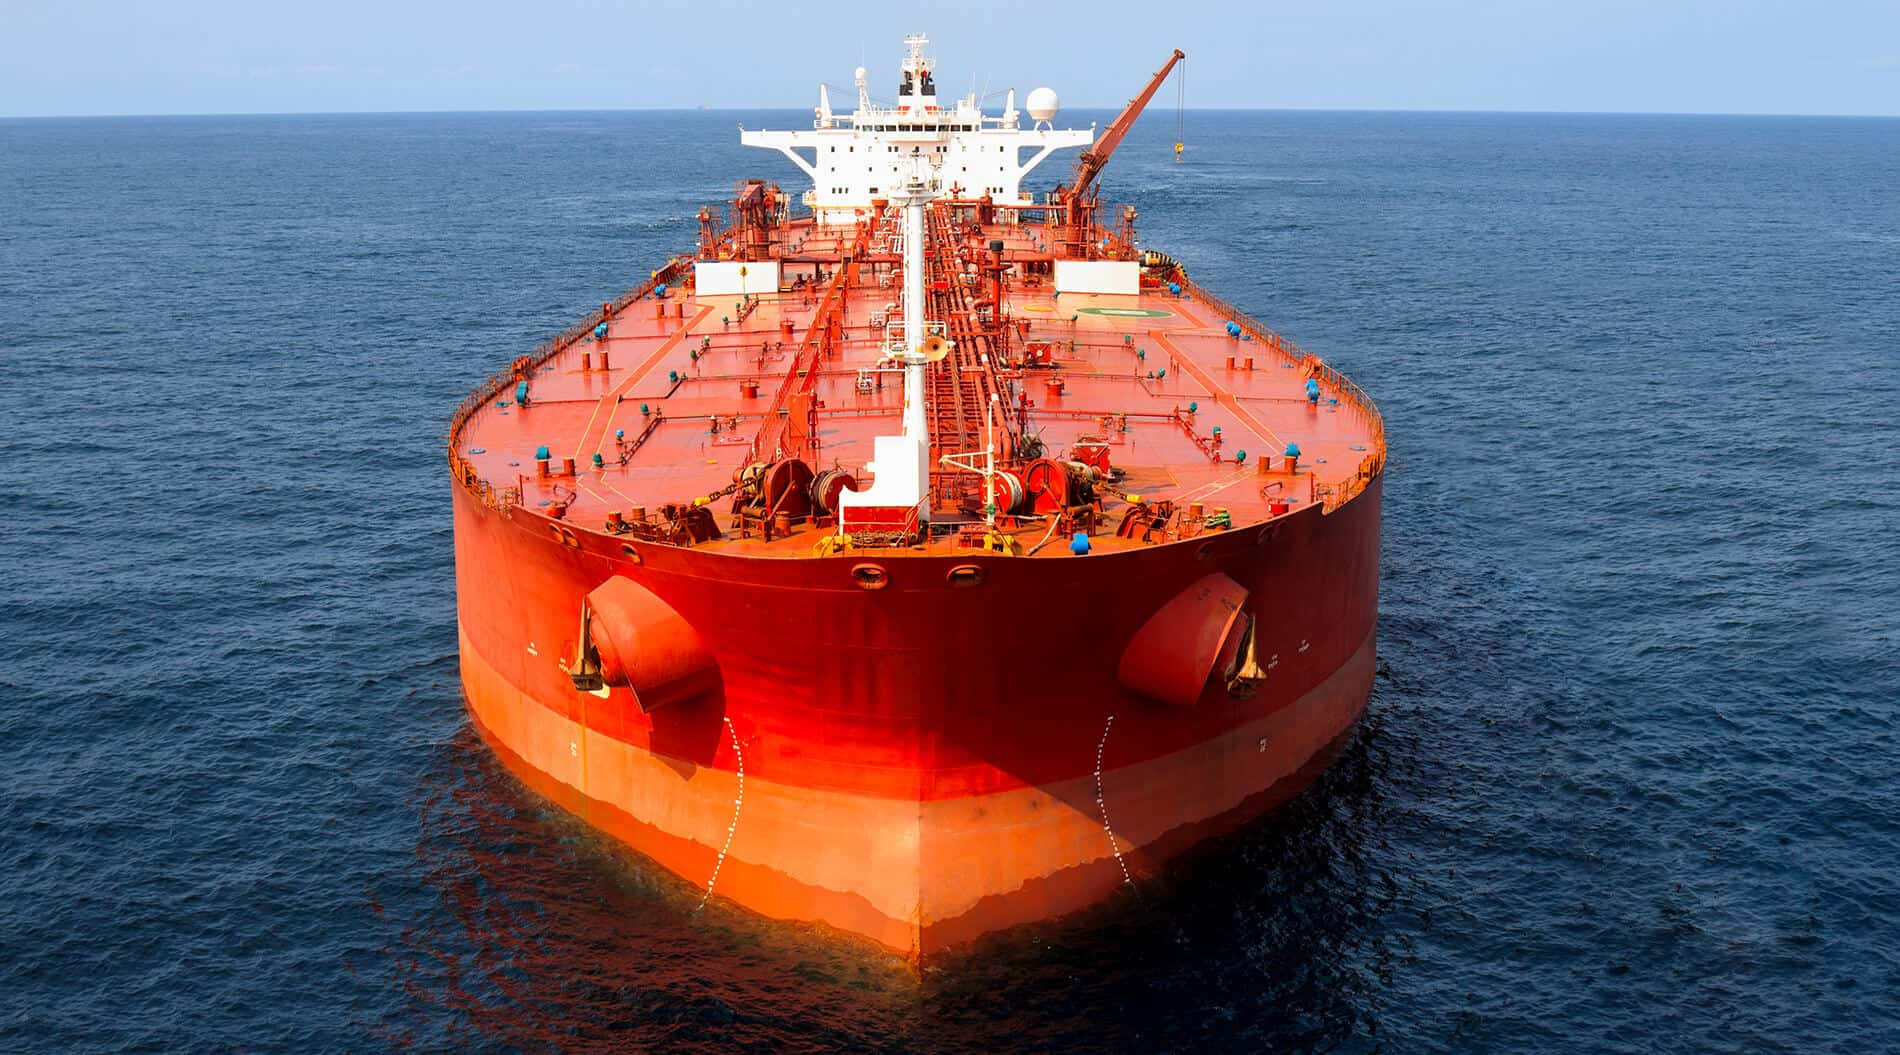 An large red oil tanker requires large ship financing services